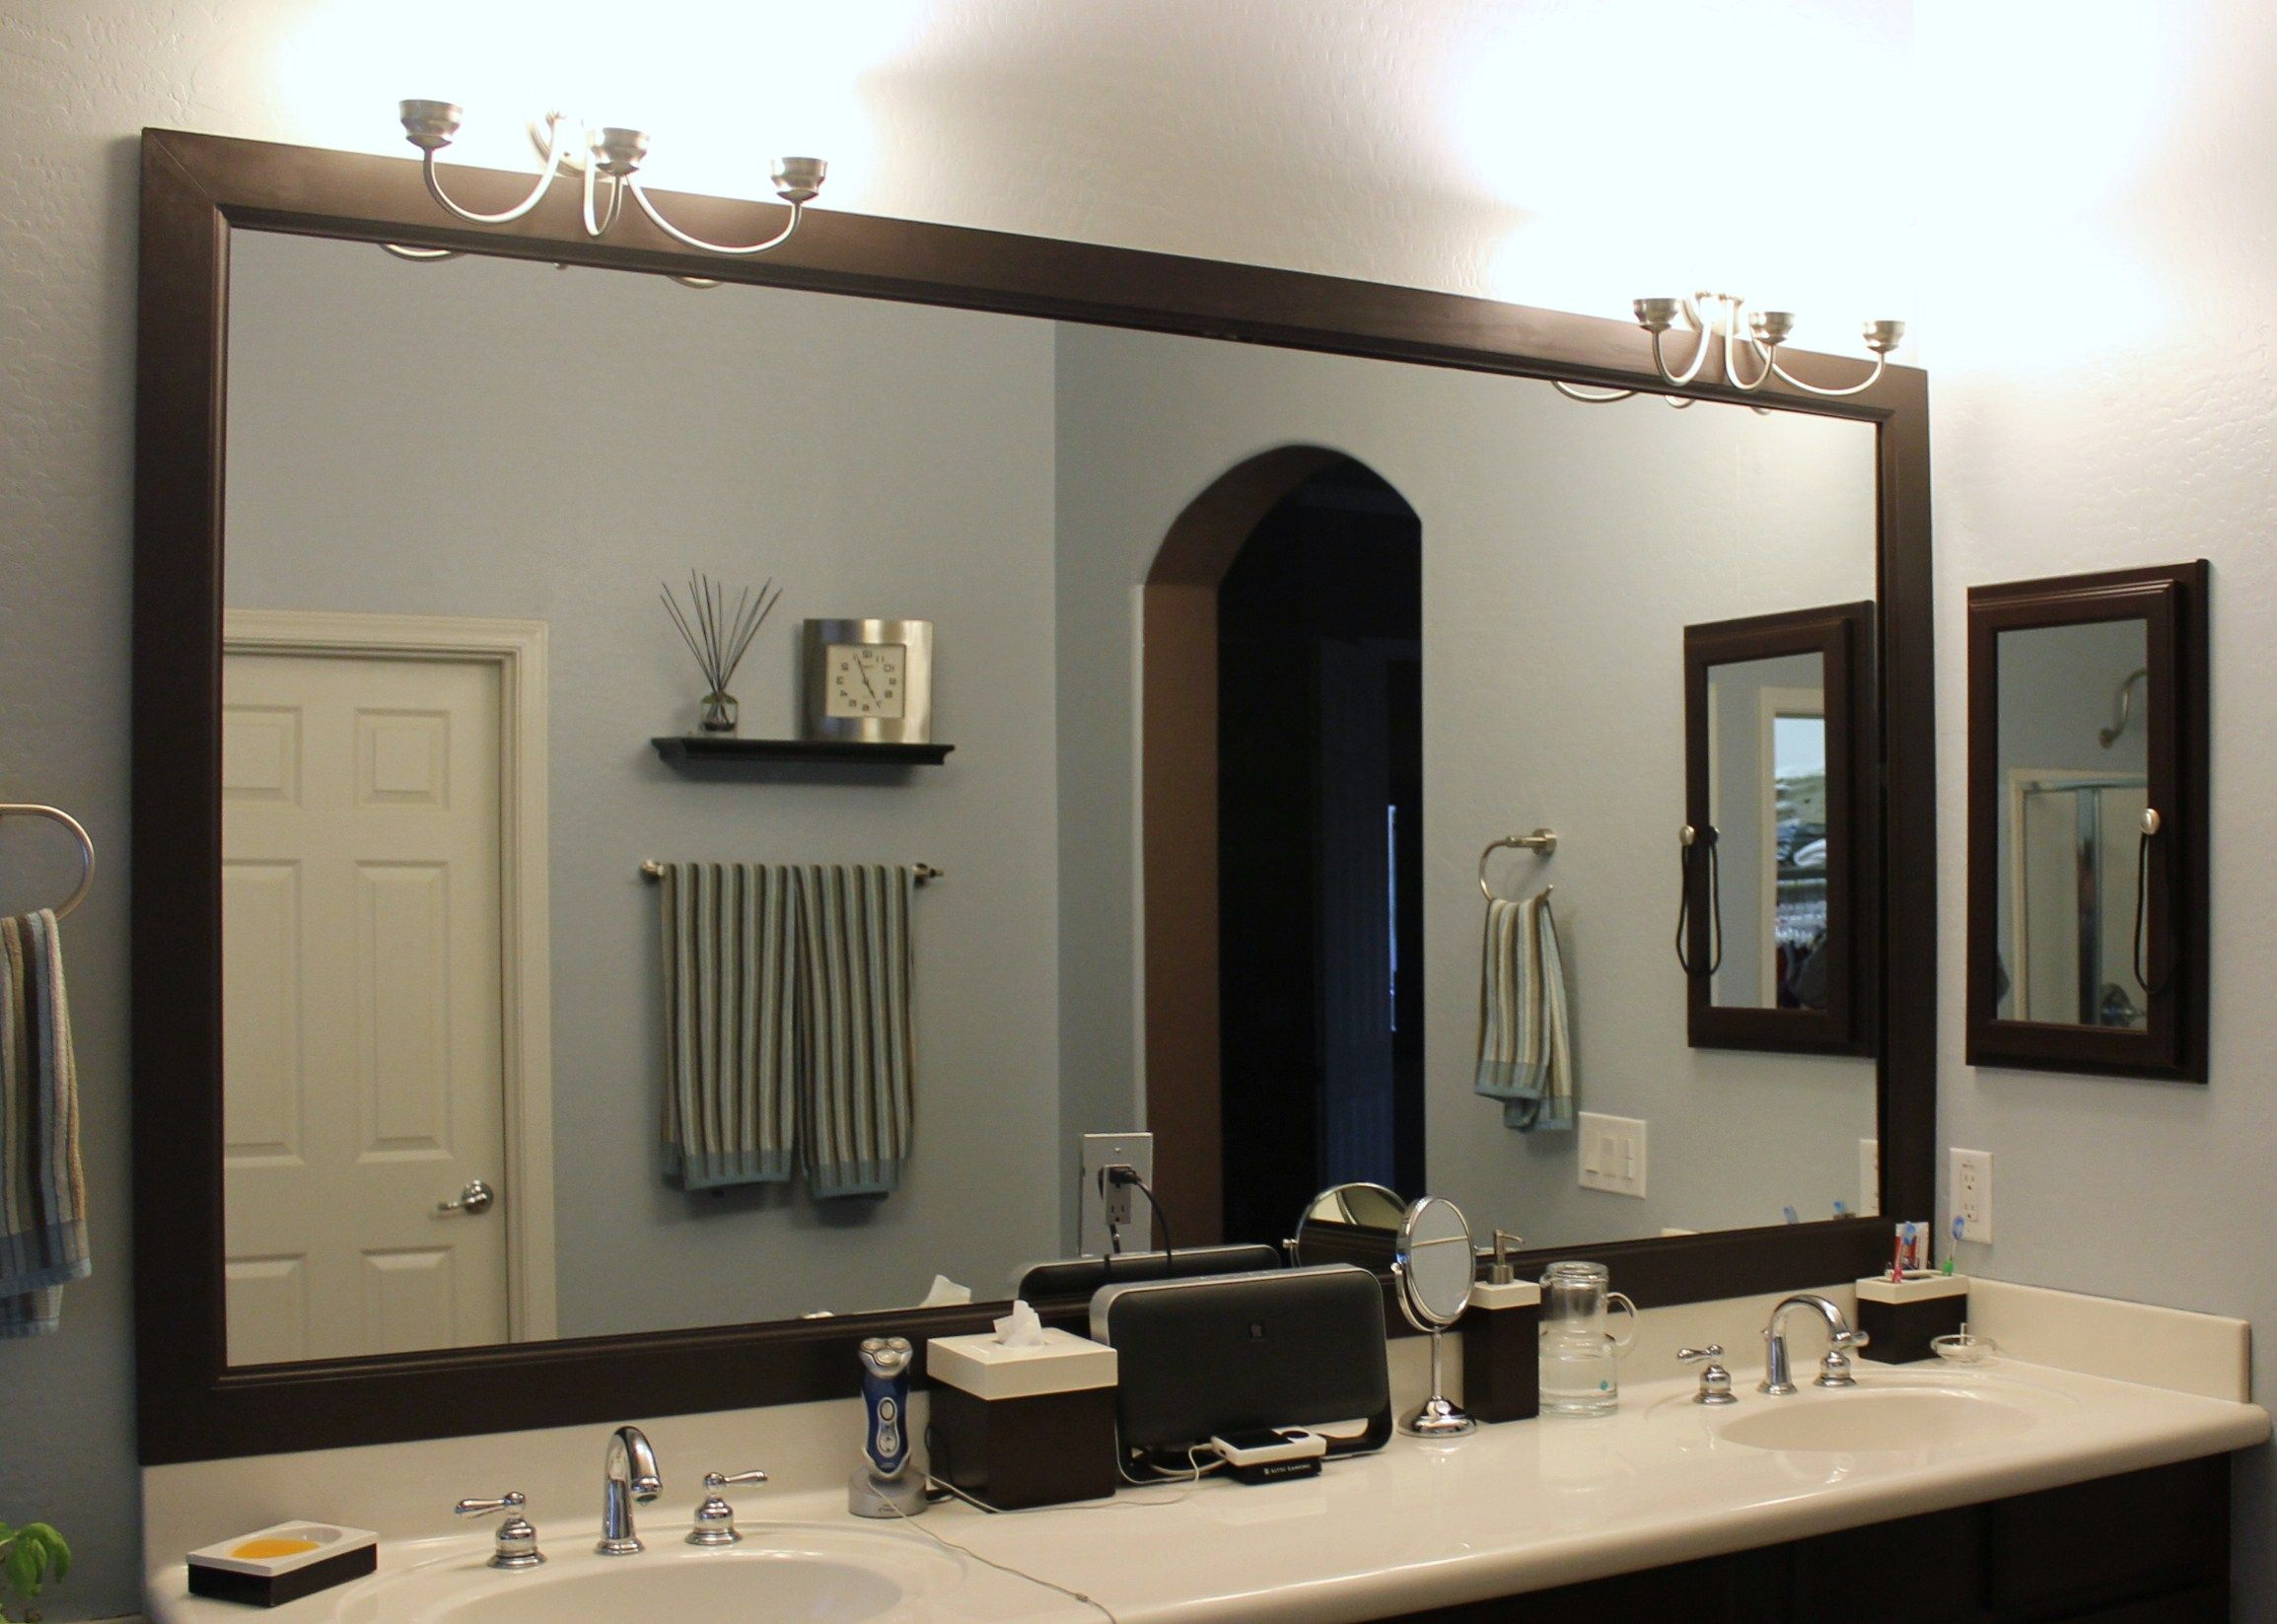 Model You Know Those Clip Mirrors In The Bathroom? They Can Be Kind Of Ugly Or Just Feel Unfinished Im Going To Show You How To Make A DIY Mirror Frame For One Of Those Clip Mirrors  And HANG The Frame So Its Easy To Remove  And Do